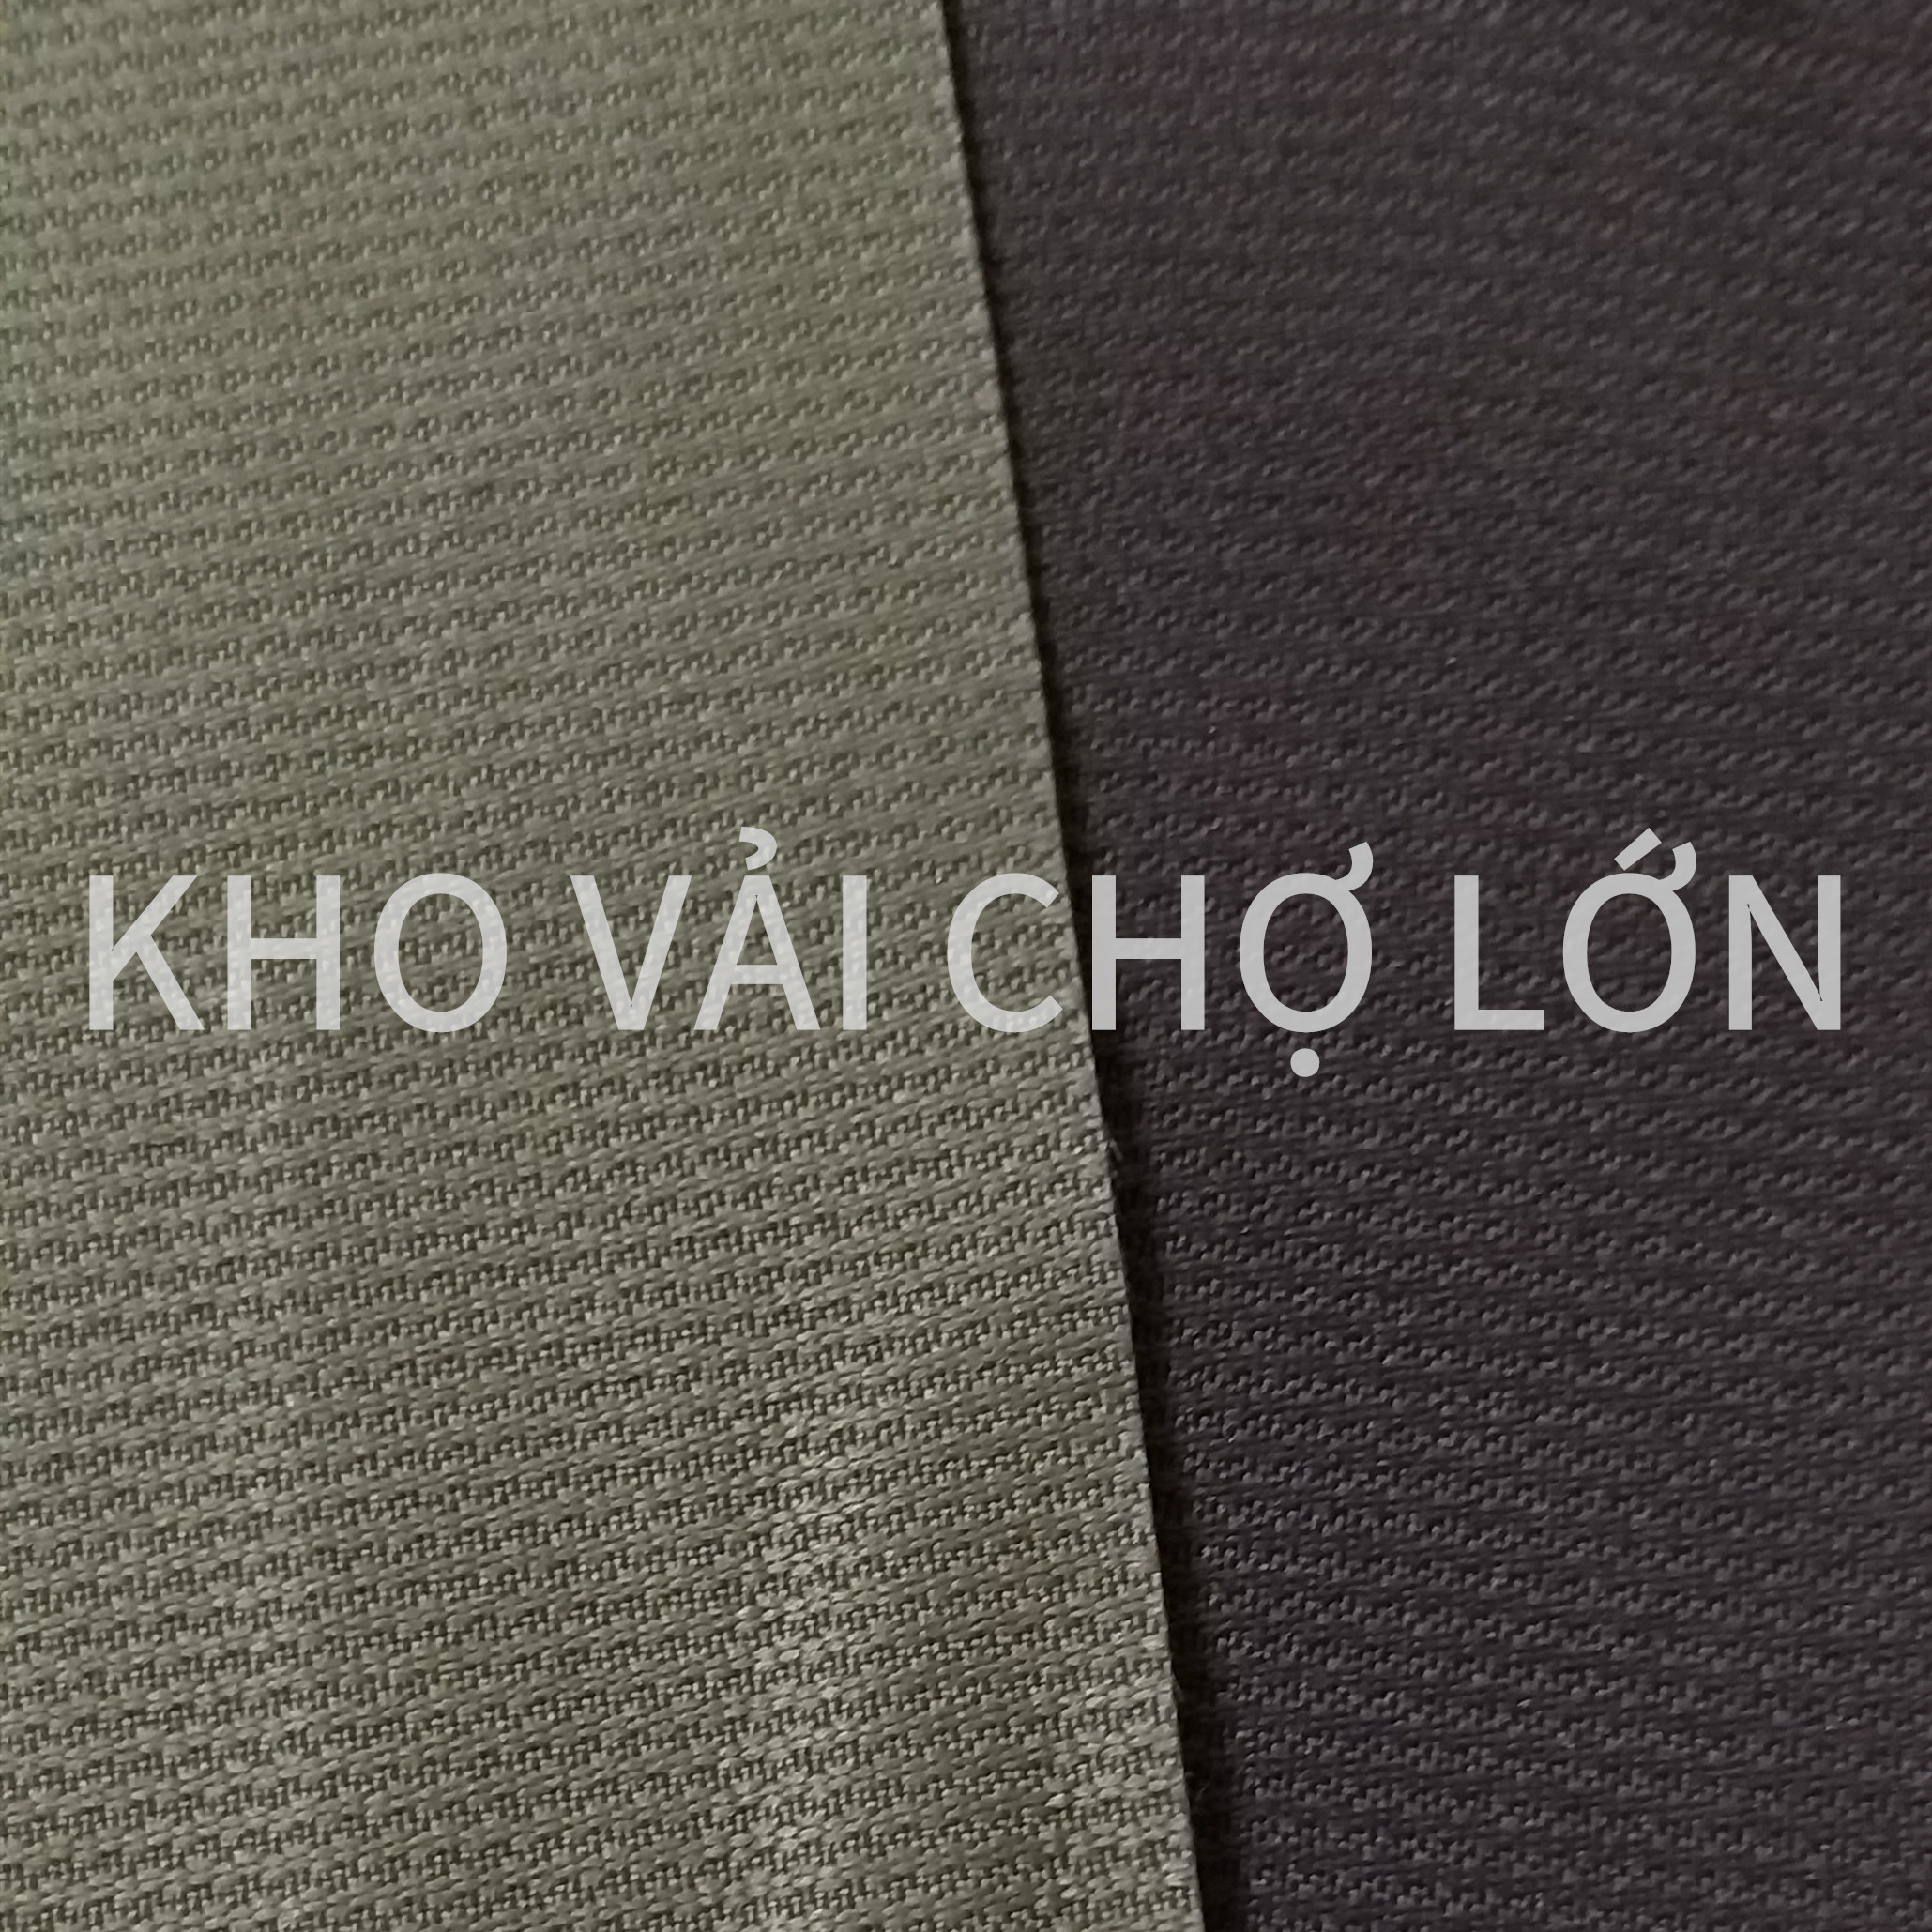 600D chain jacquard (PVC, dyed cloth)